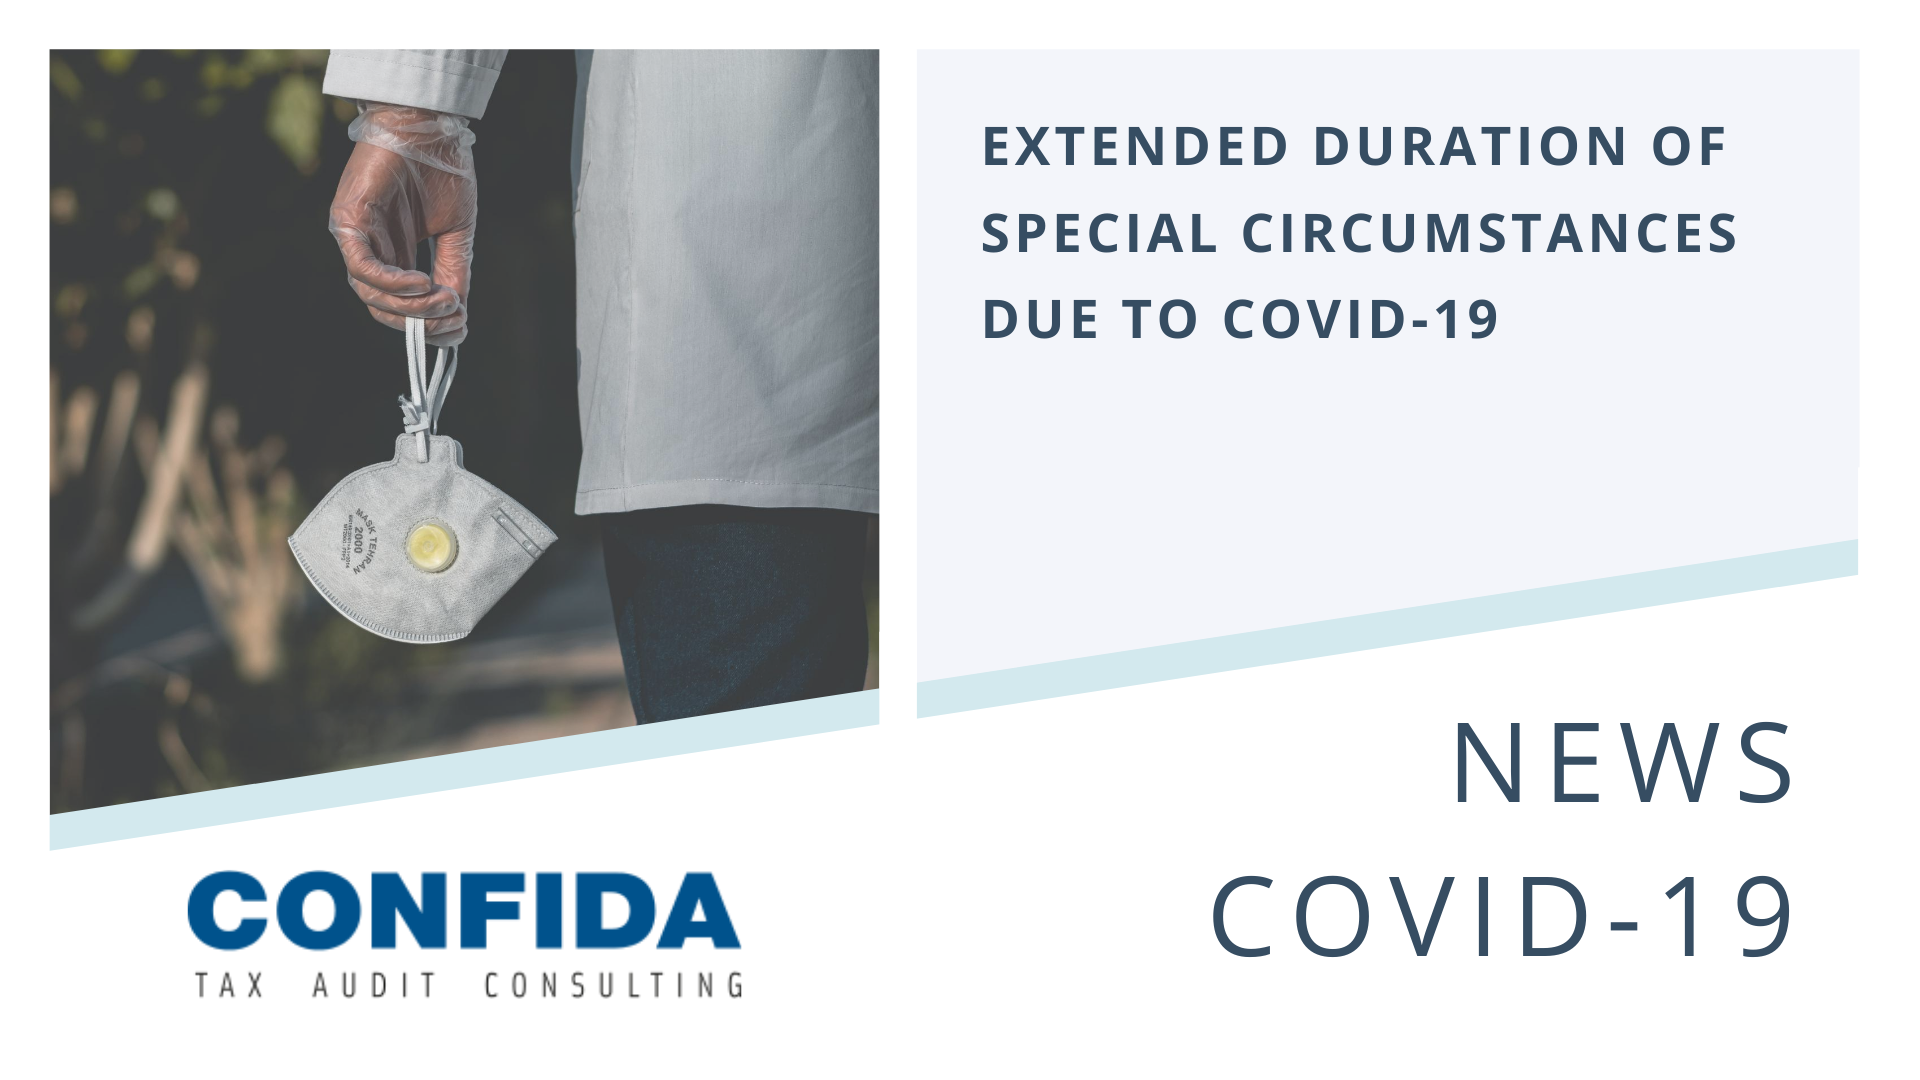 Extended Duration of Special Circumstances due to COVID-19